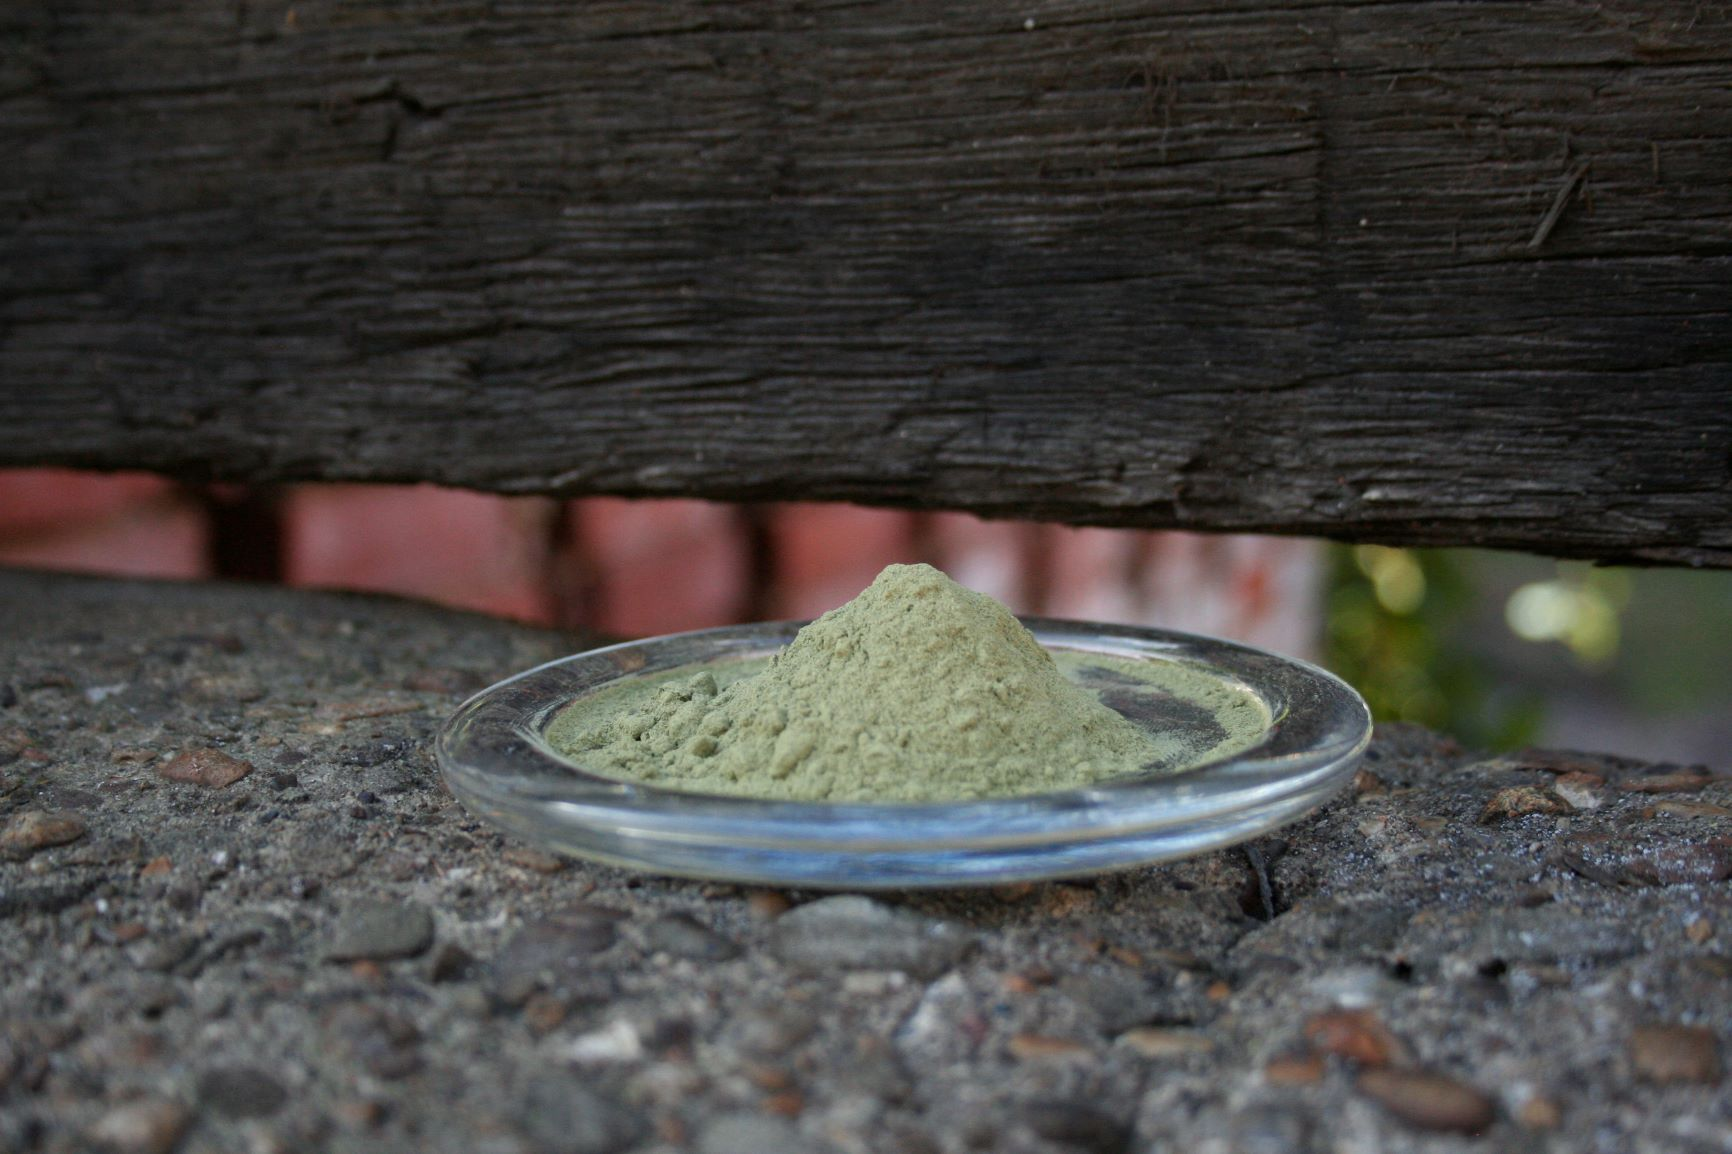 CDC Blames Even More Multiple-Drug Abuser Deaths on Kratom Than They Did Before